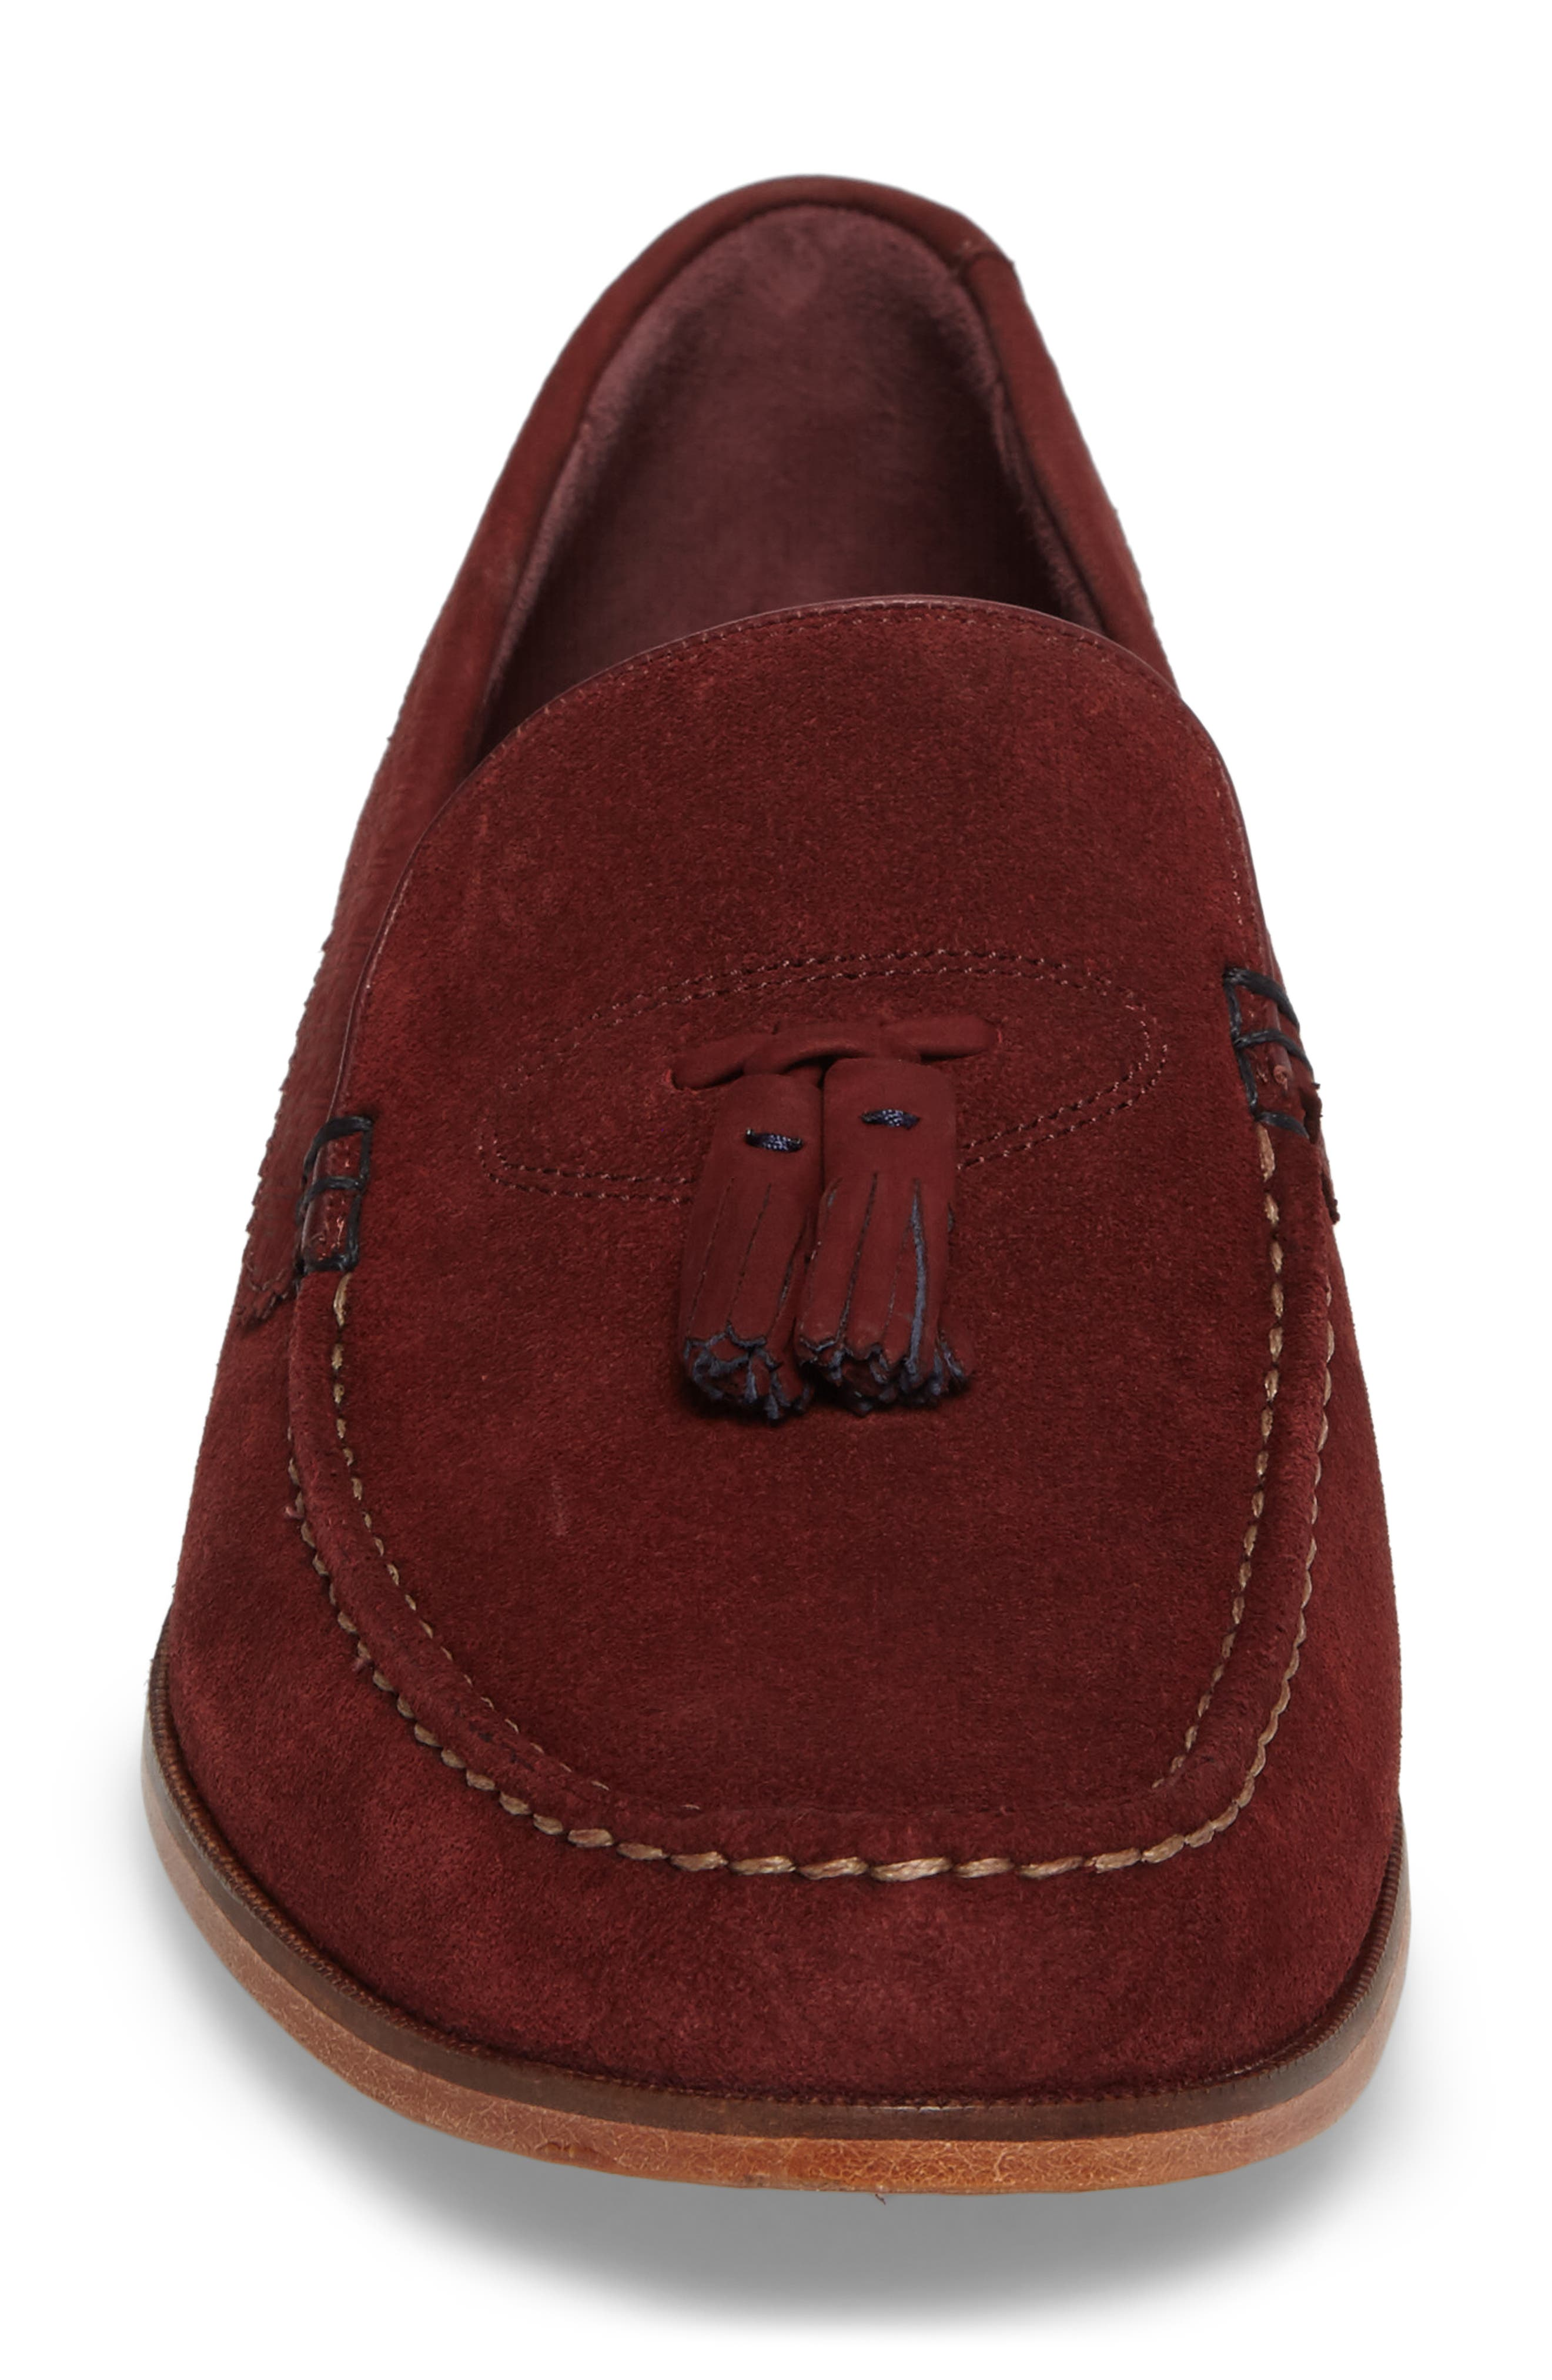 Dougge Tassel Loafer,                             Alternate thumbnail 23, color,